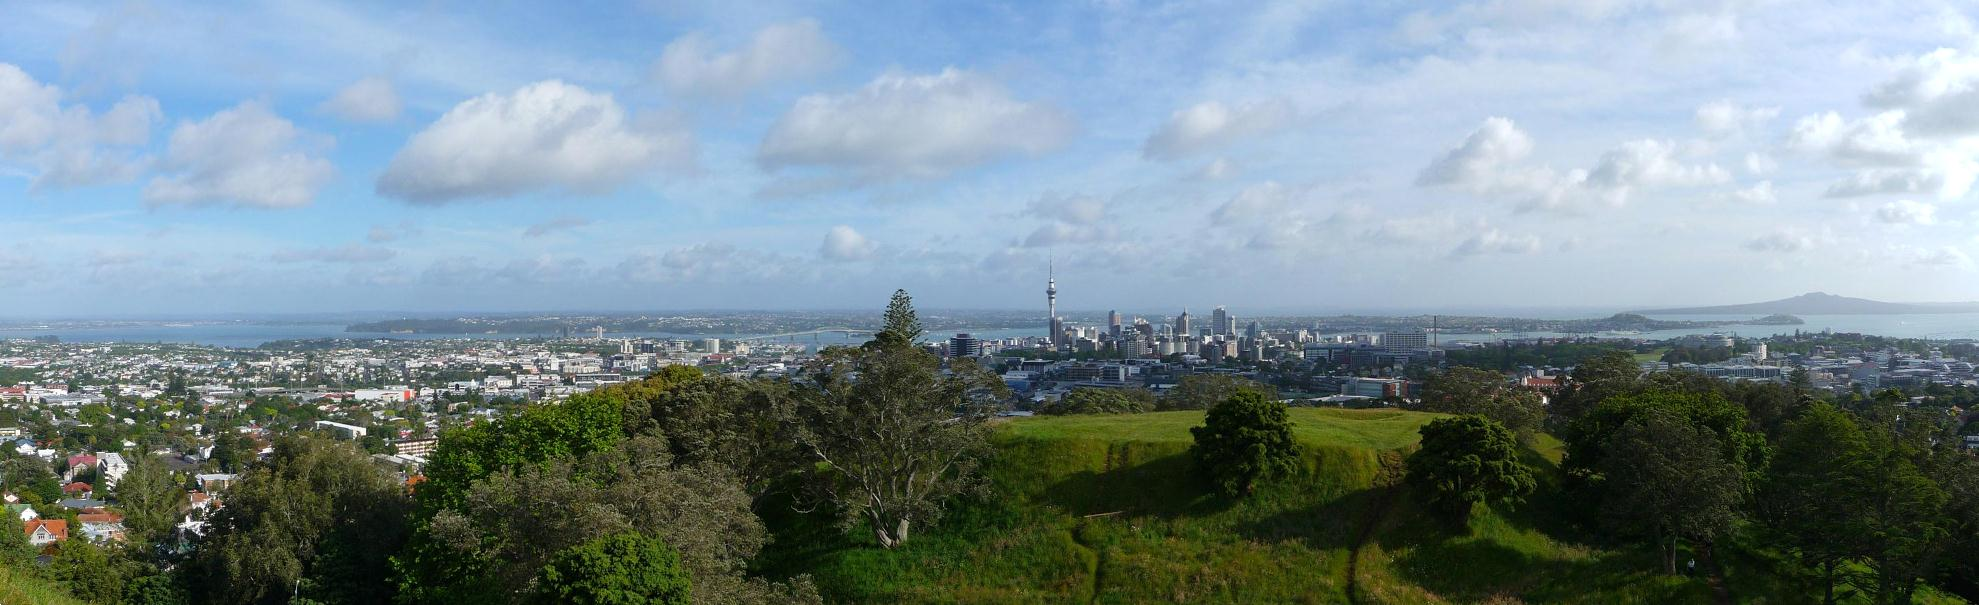 The Greenery Of Auckland The Missing Year